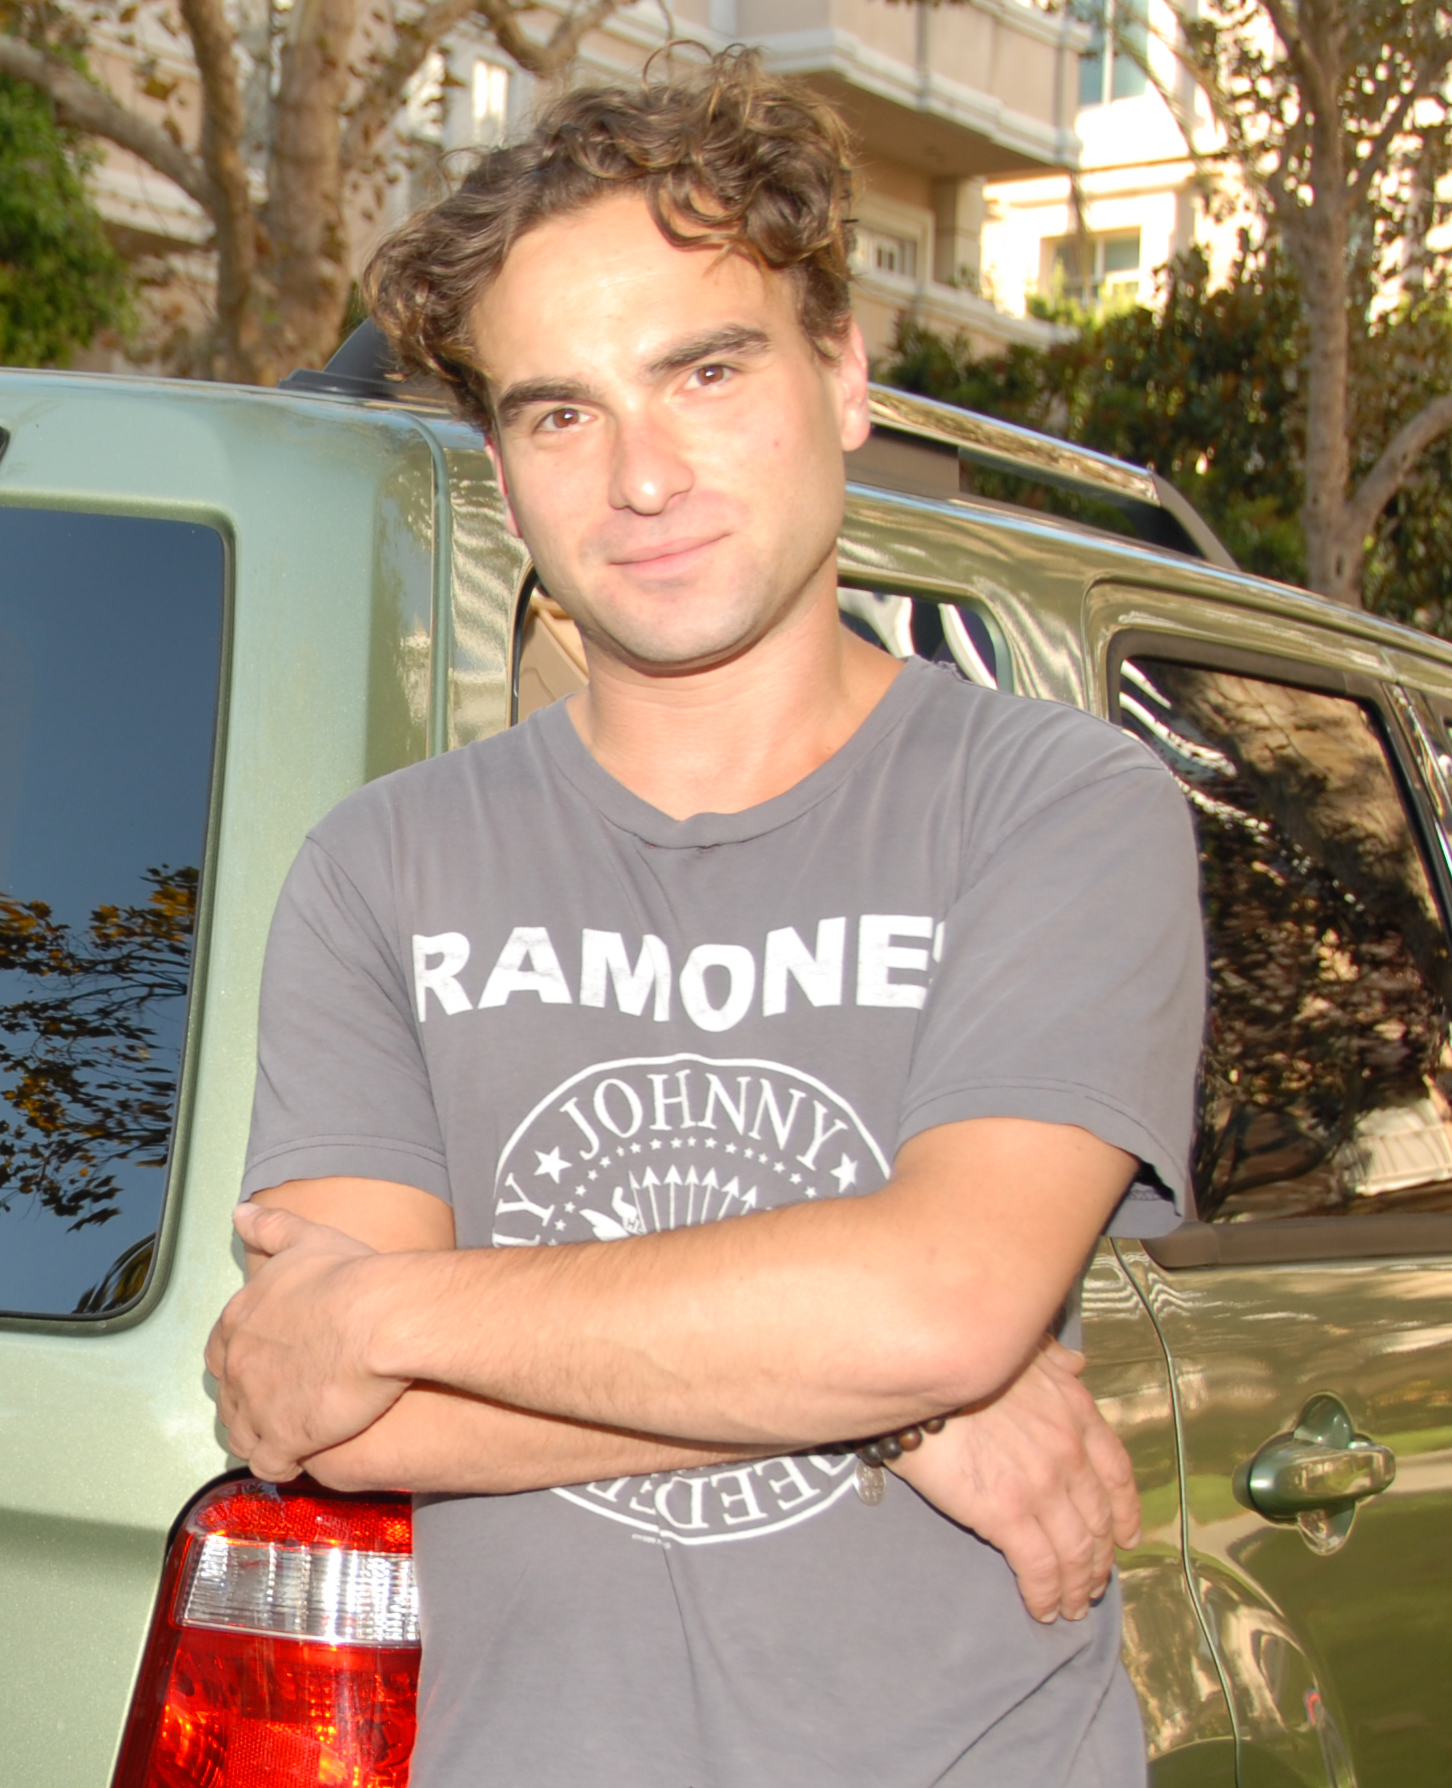 http://upload.wikimedia.org/wikipedia/commons/9/95/Galecki%2C_Johnny_%28FMC%29.jpg